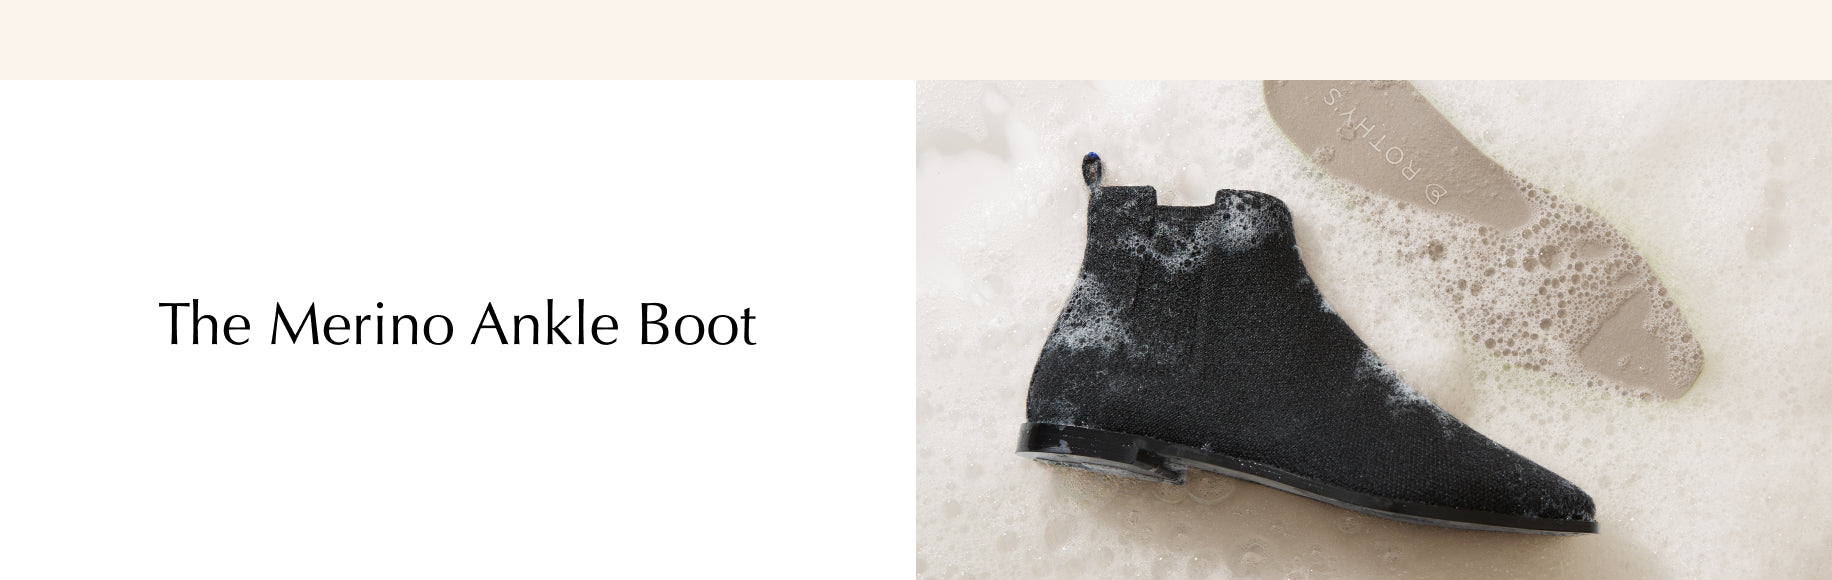 "Text banner with the words ""The Merino Ankle Boot""."